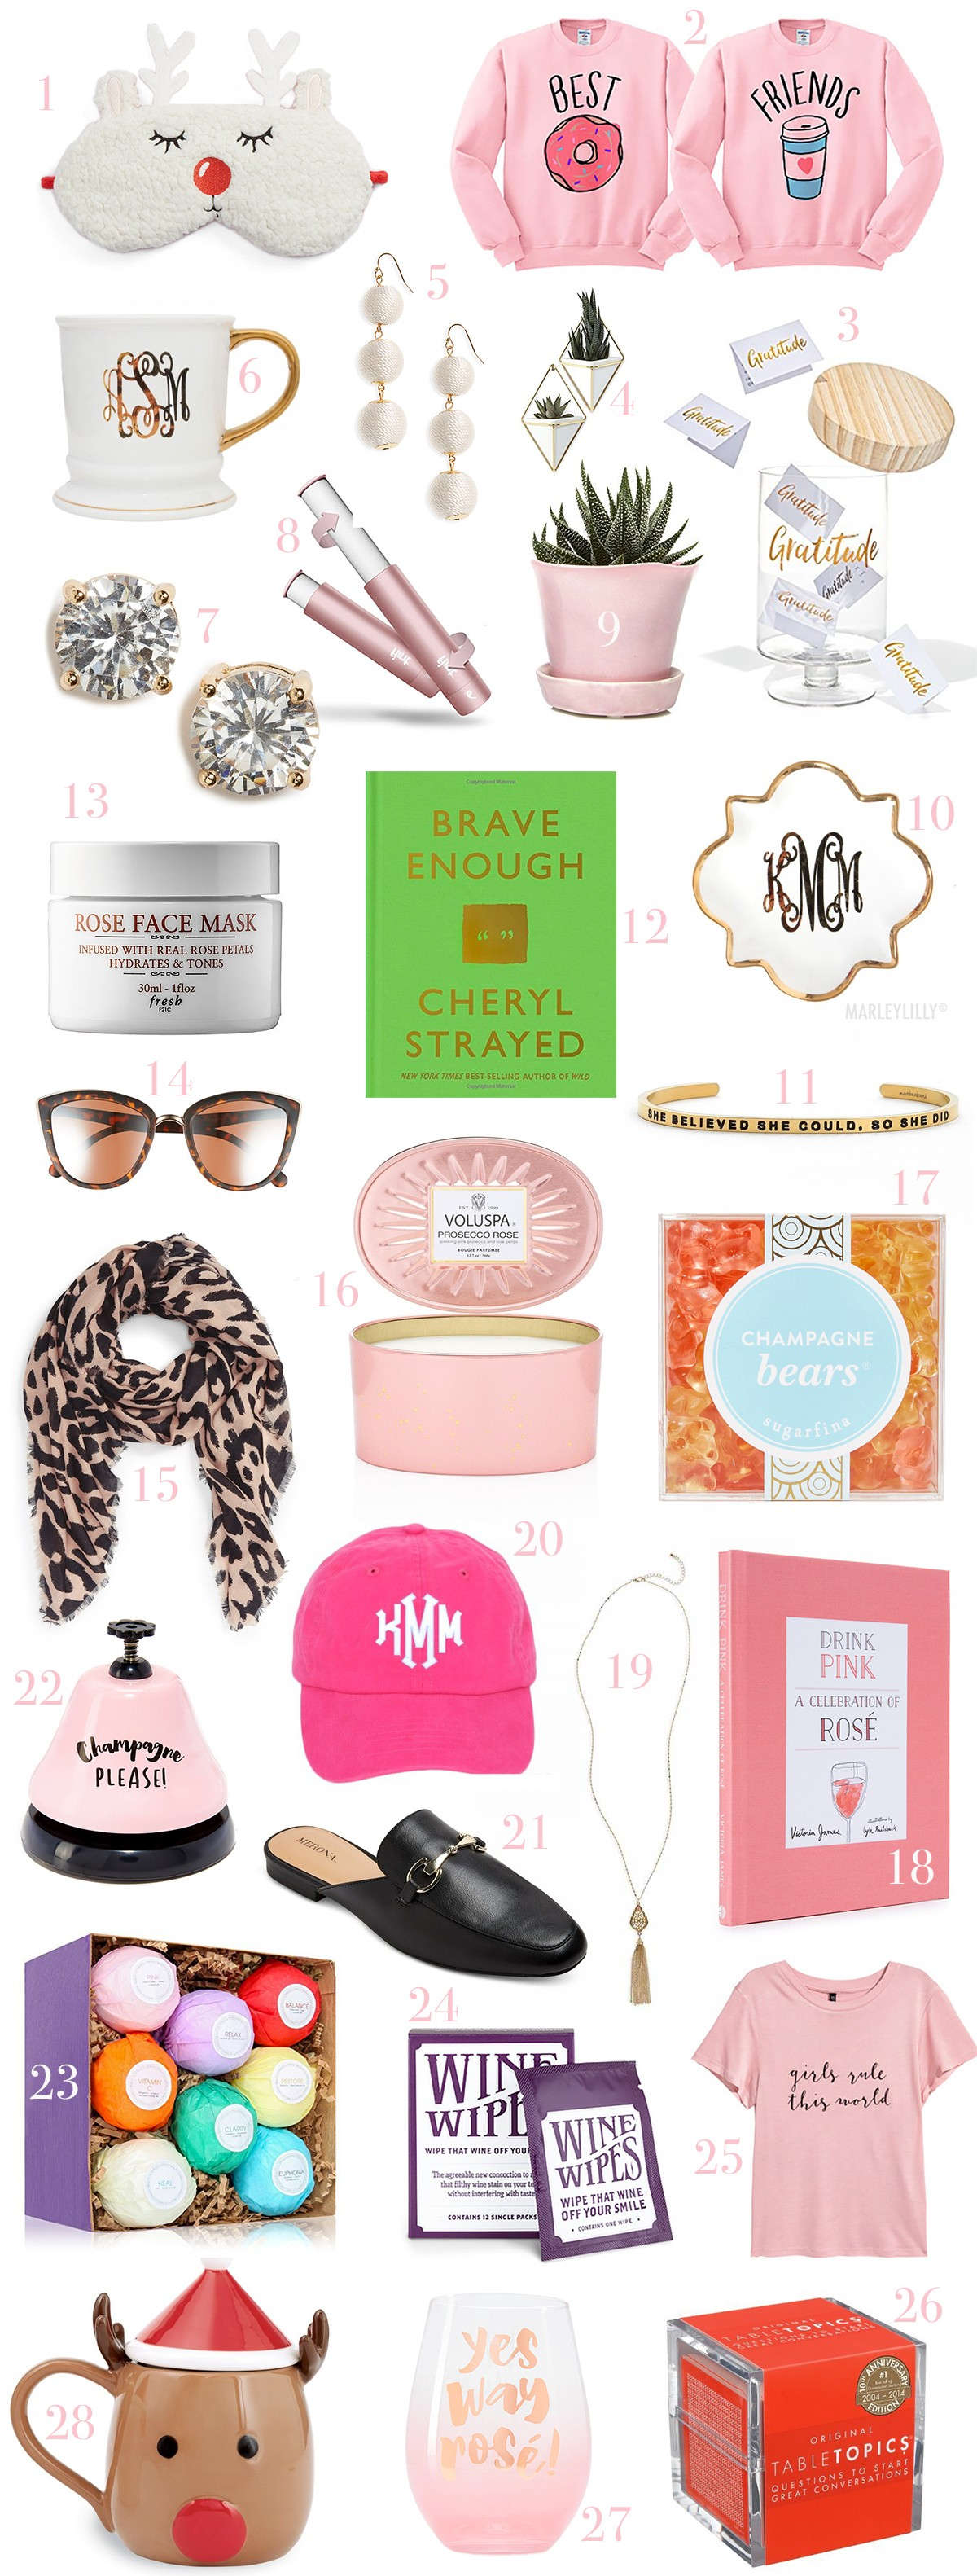 gifts for women under 25 1 7 - Christmas Gifts Under 25